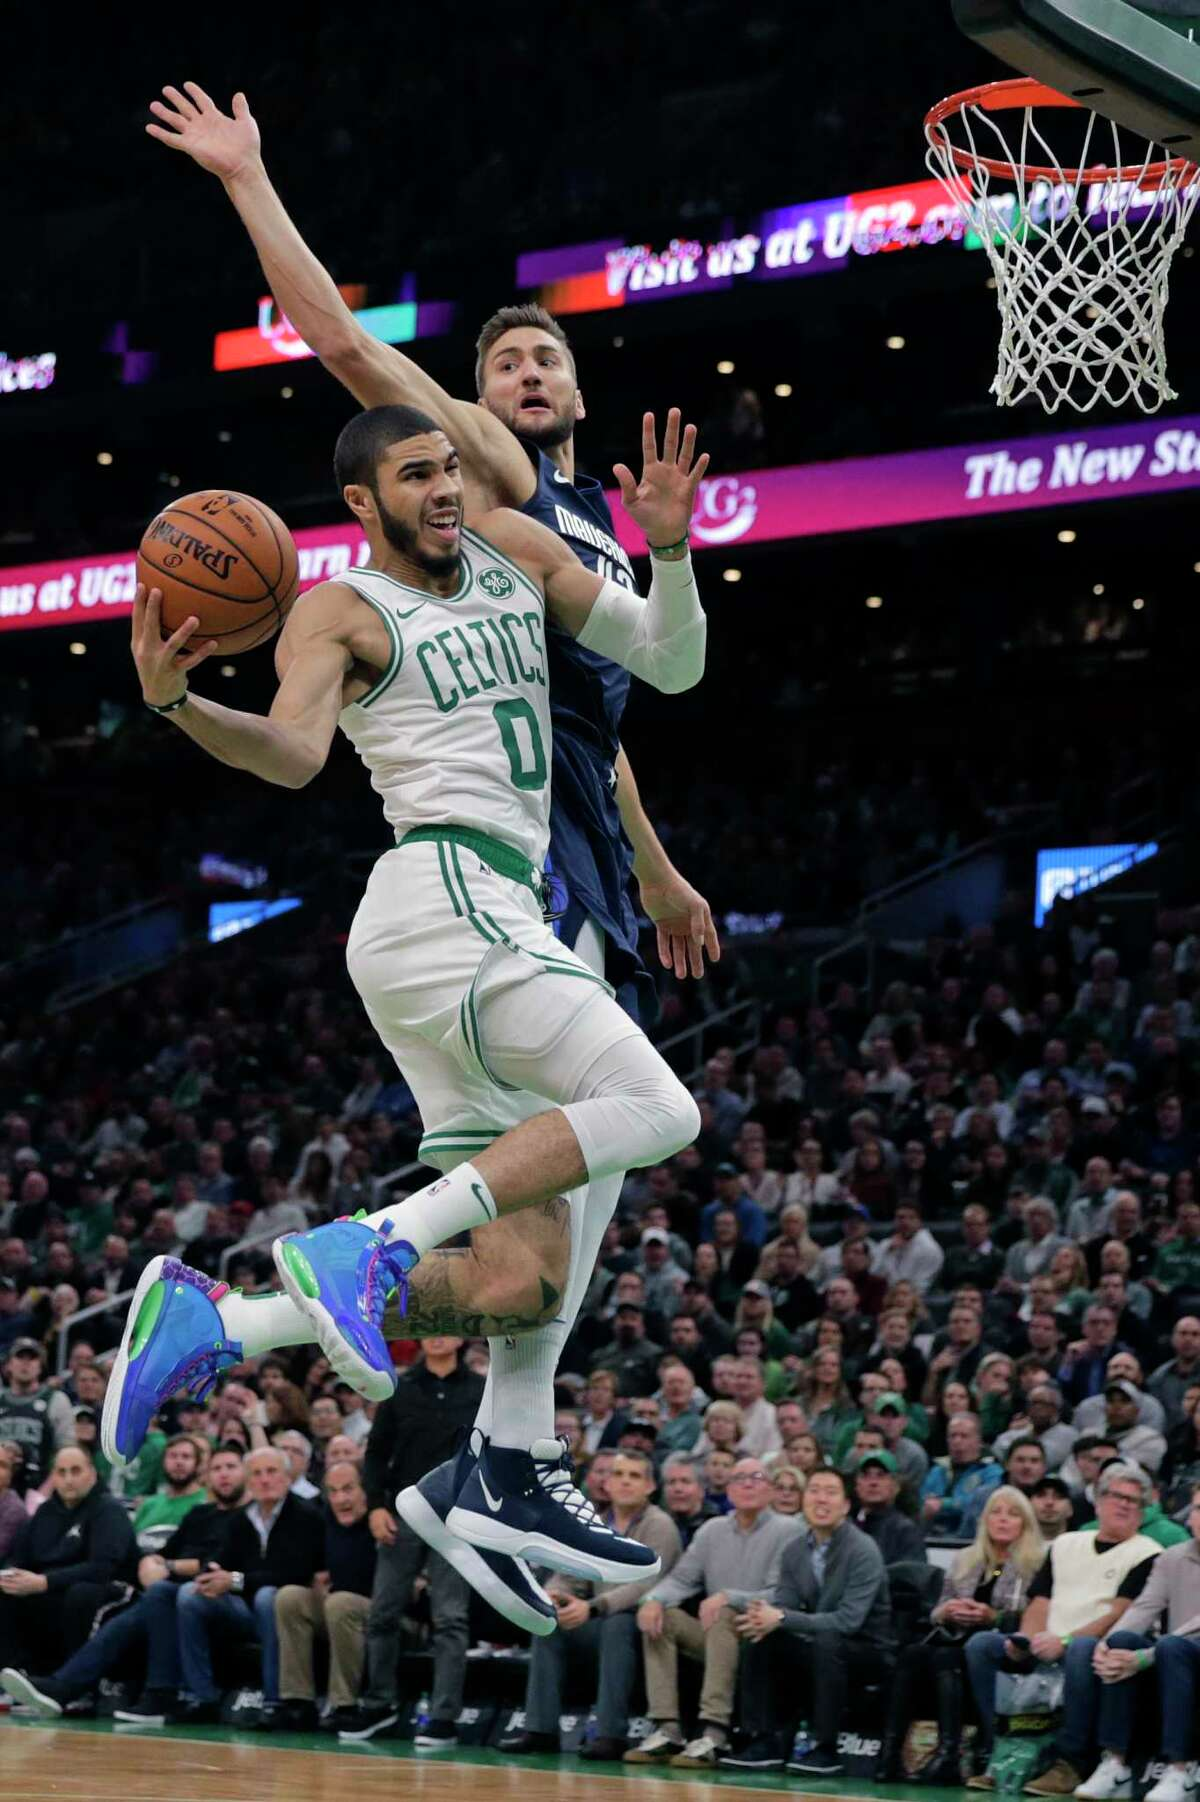 Boston Celtics forward Jayson Tatum (0) drives to the basket against Dallas Mavericks center Maxi Kleber, rear, during the first quarter of an NBA basketball game in Boston, Monday, Nov. 11, 2019. (AP Photo/Charles Krupa)